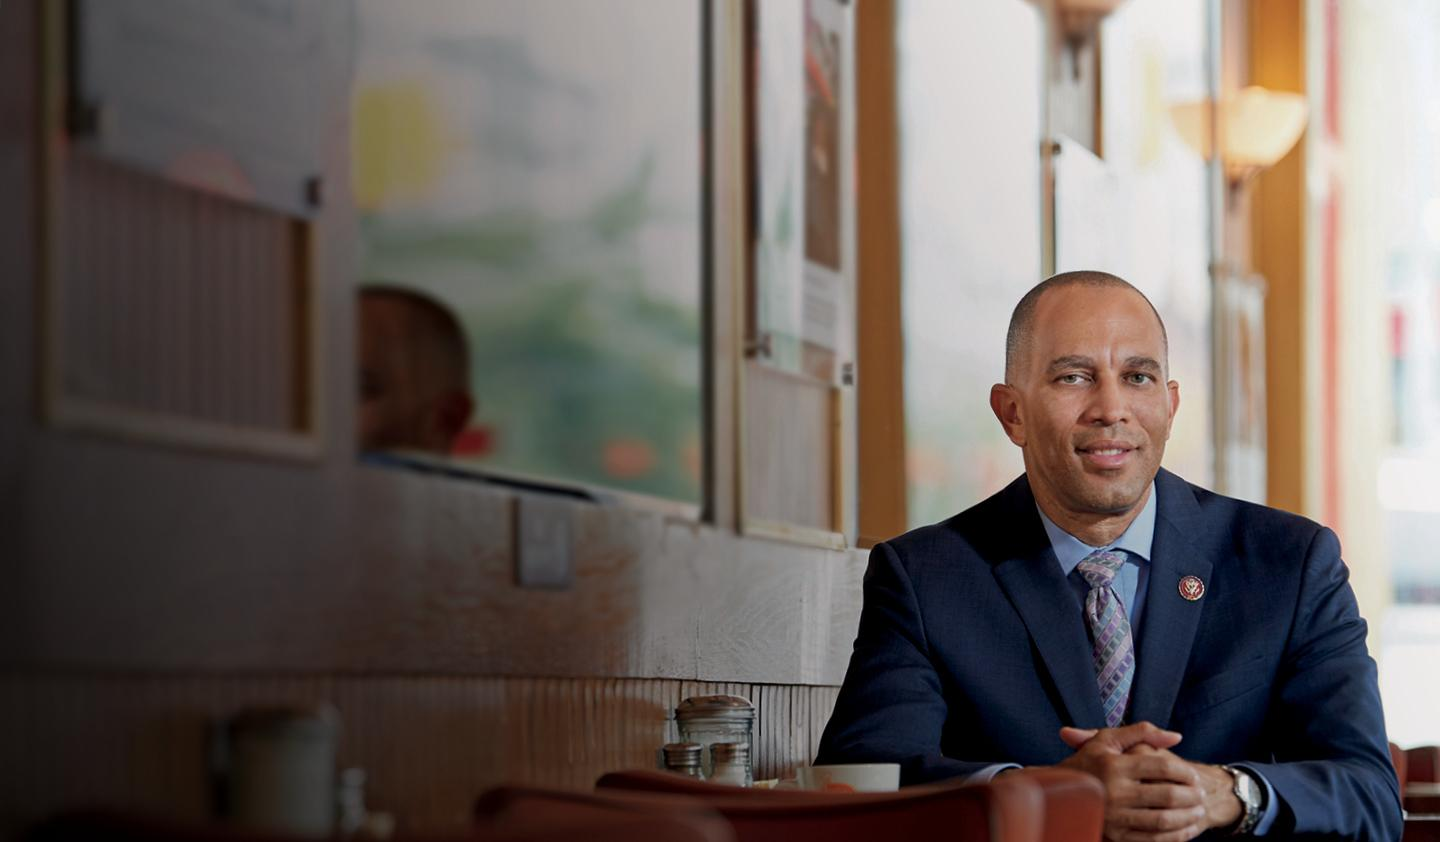 Hakeem Jeffries sitting at table in diner